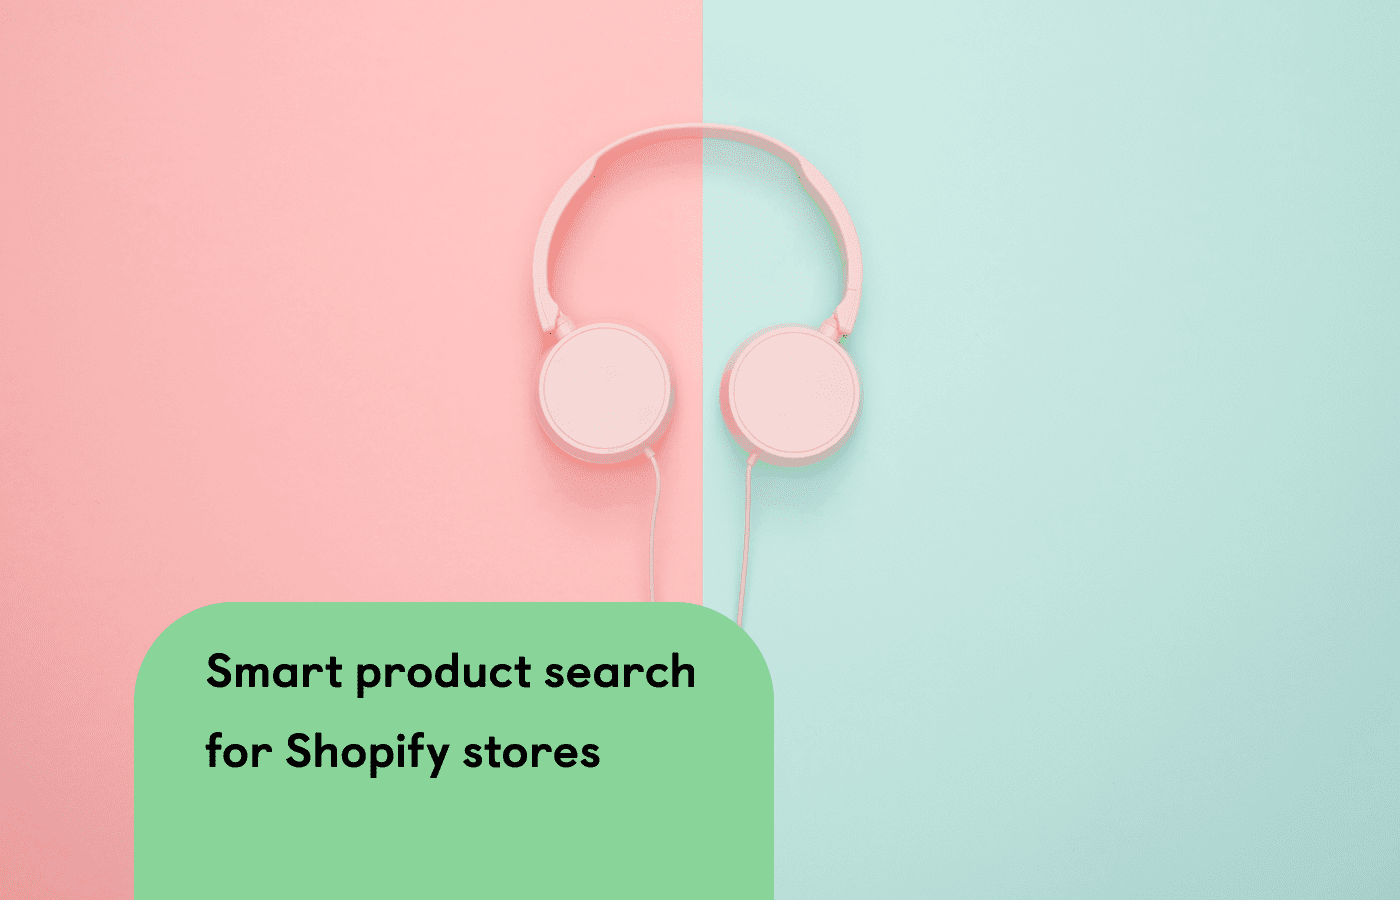 5 Things Good Search Should Do for Shopify Stores